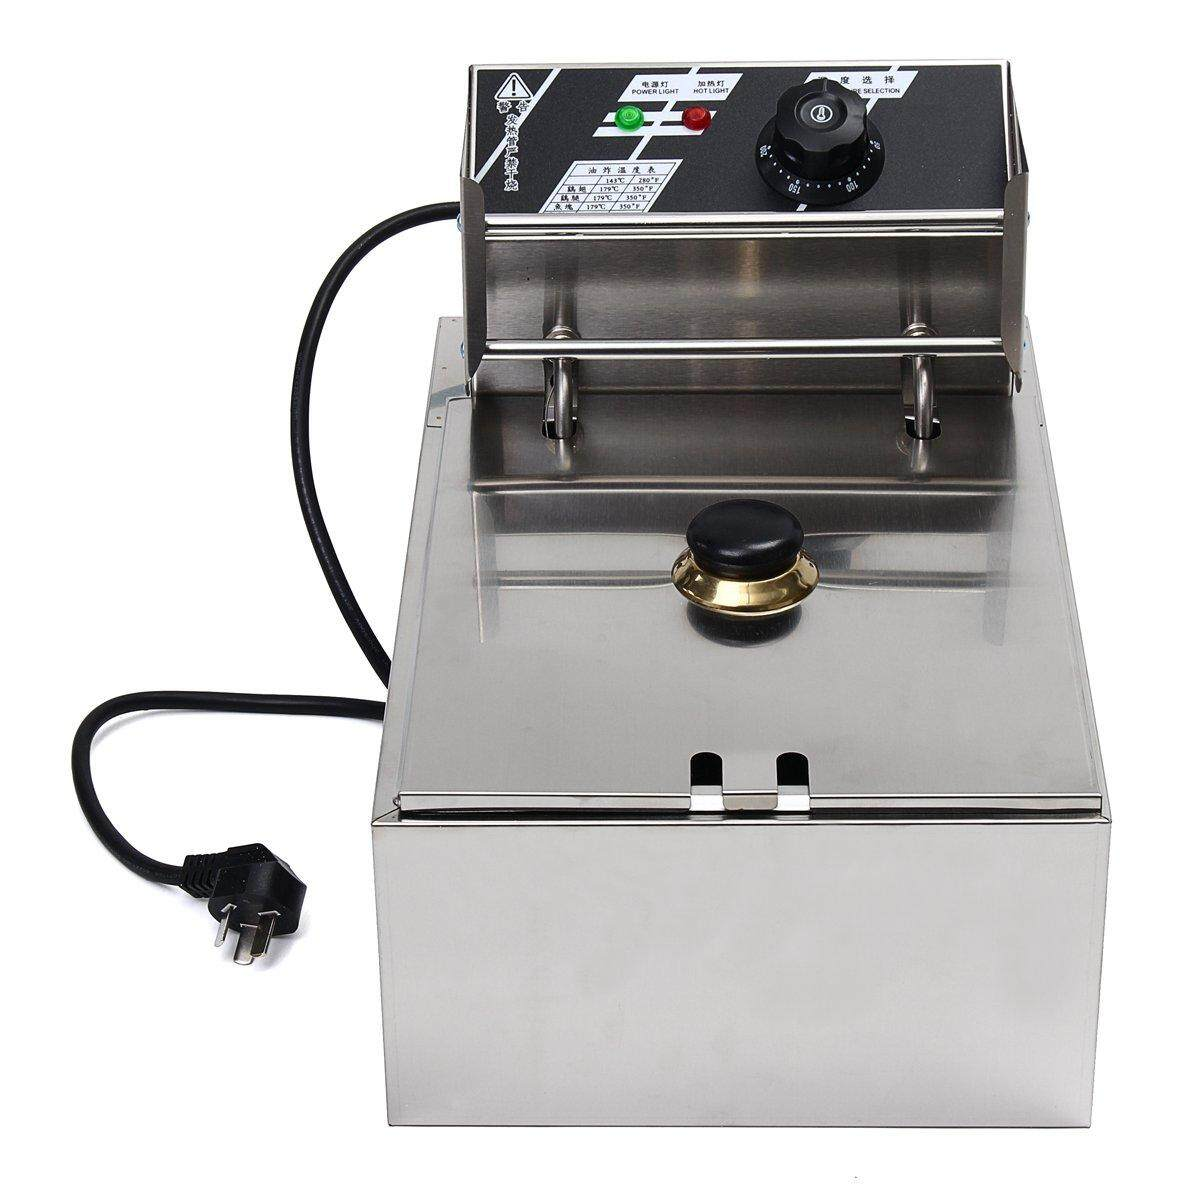 6l 2.5kw Electric Deep Fryer Commercial Home Kitchen Frying Chip Cooker Basket By Moonbeam.